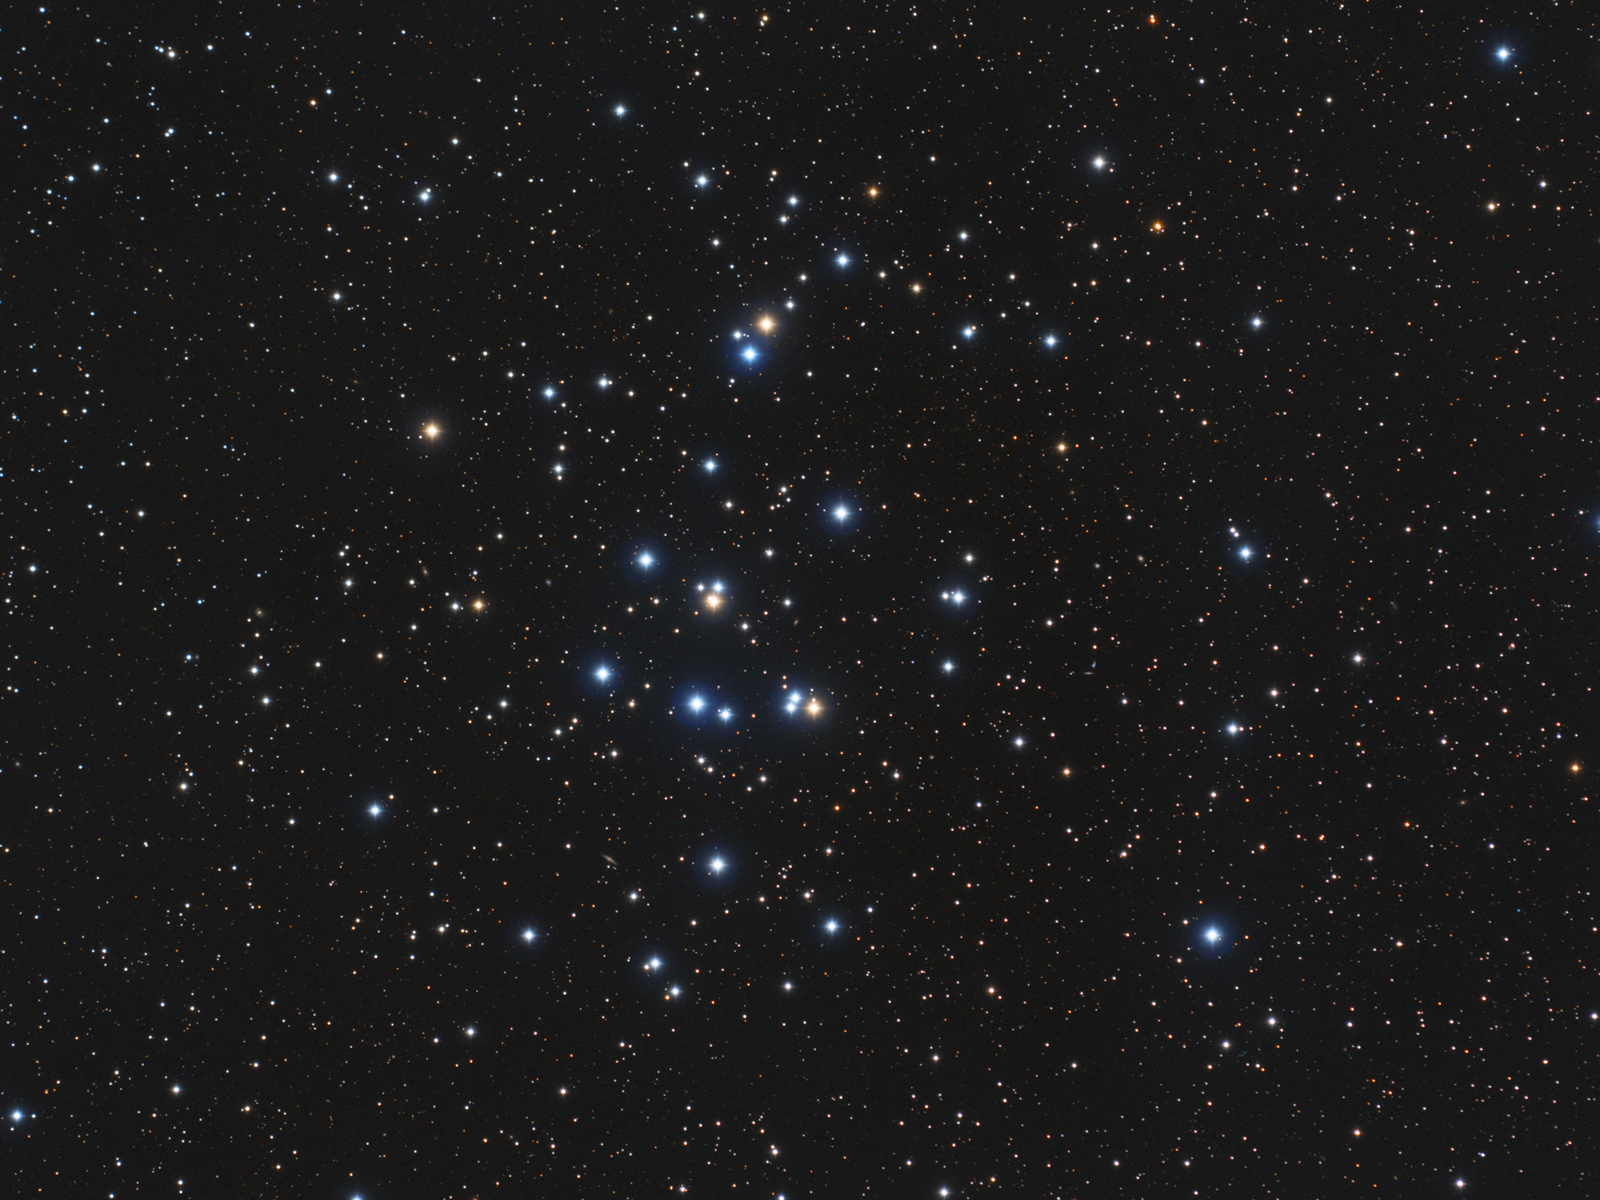 The Hyades (M44) in Cancer is one of the closest open cluster to Earth